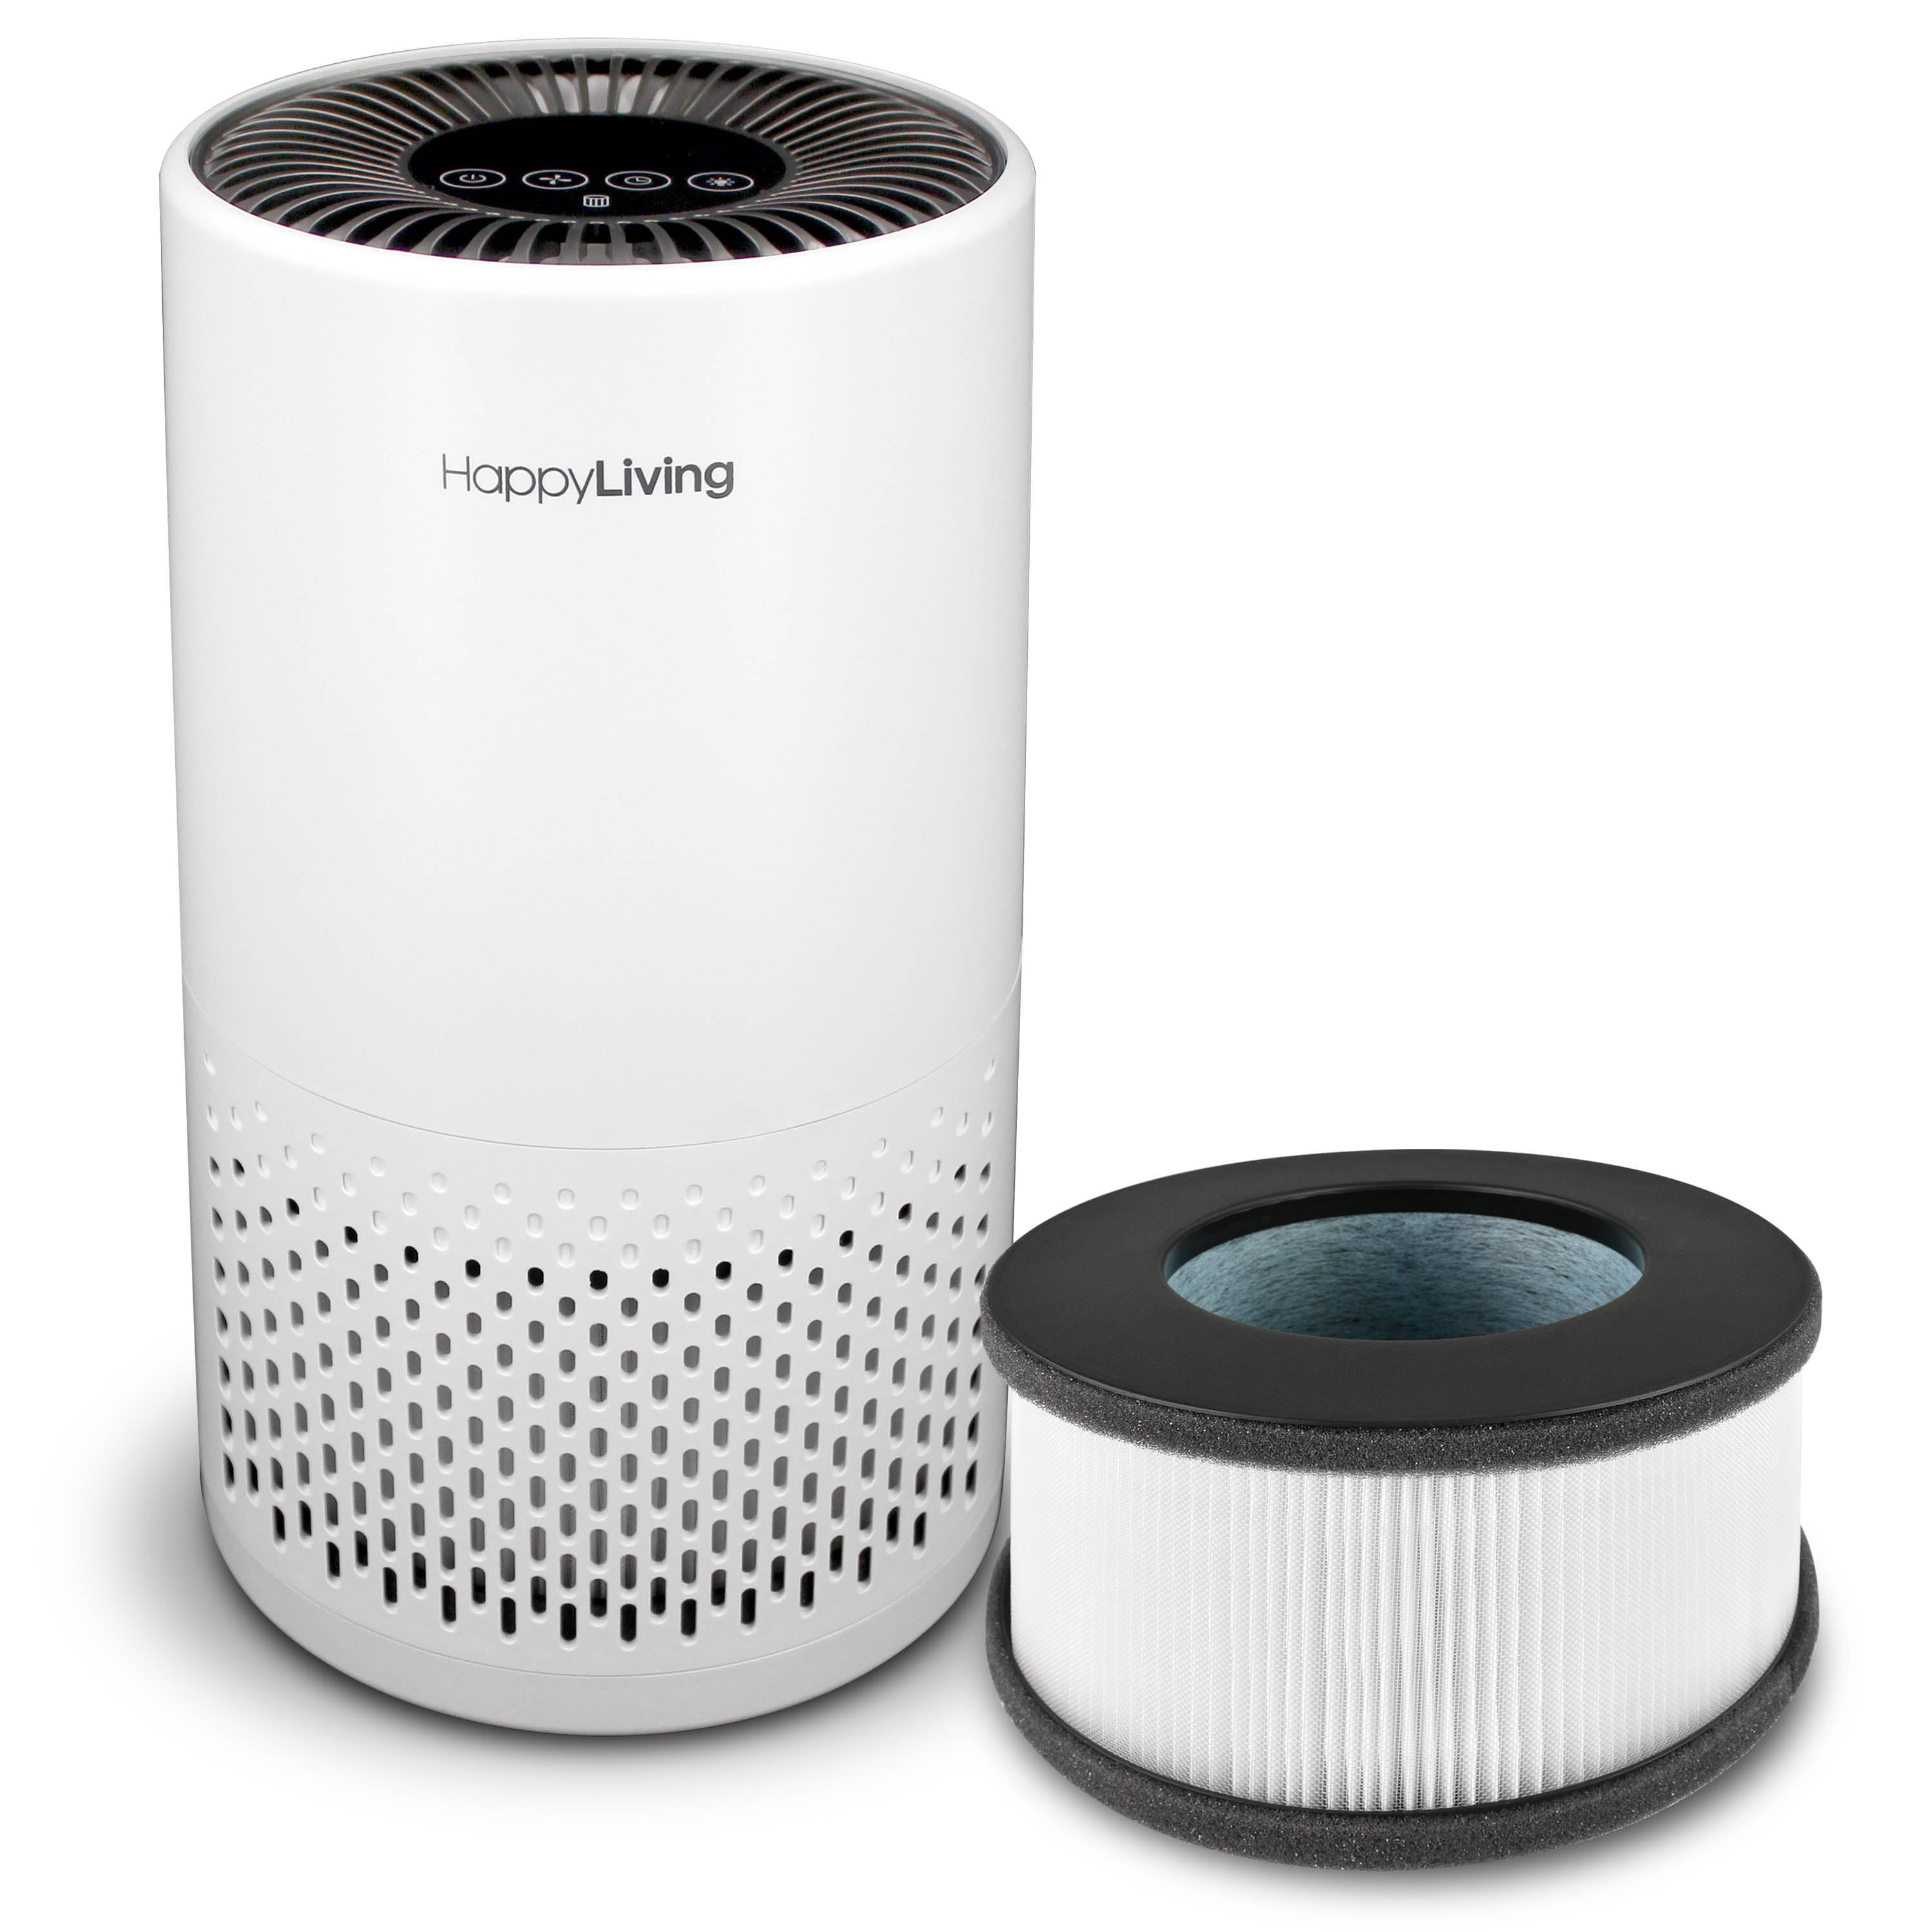 An image of a white HL-002 air purifier.